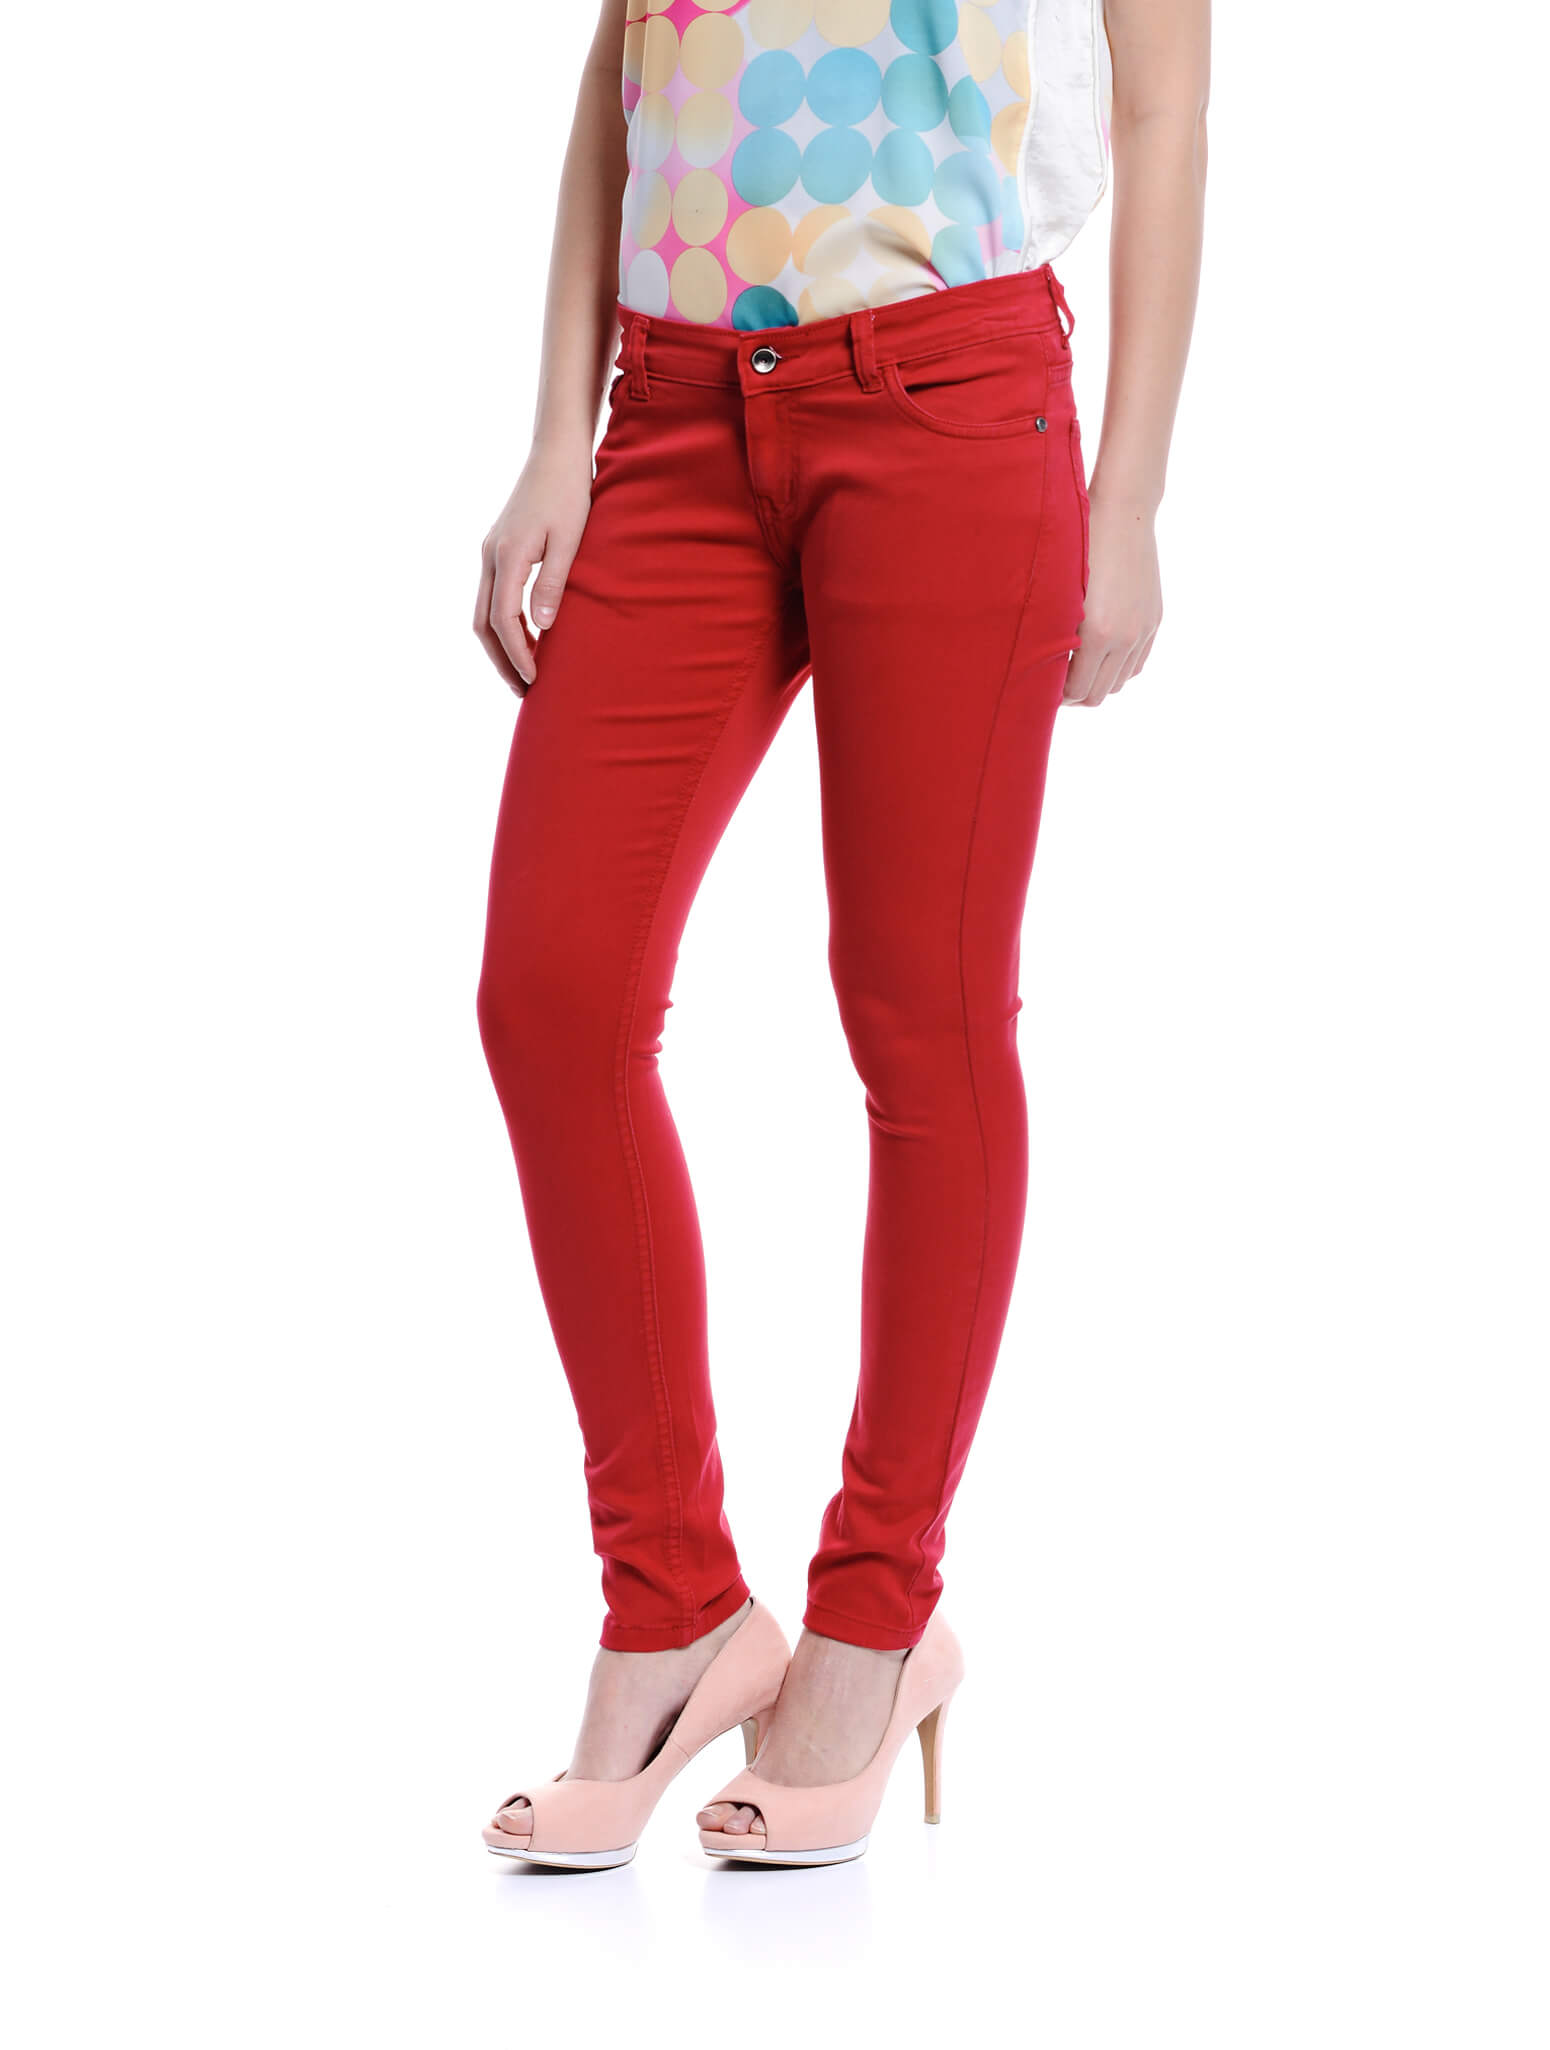 Jazz & Co Women Standard Size red mid-rise jeans